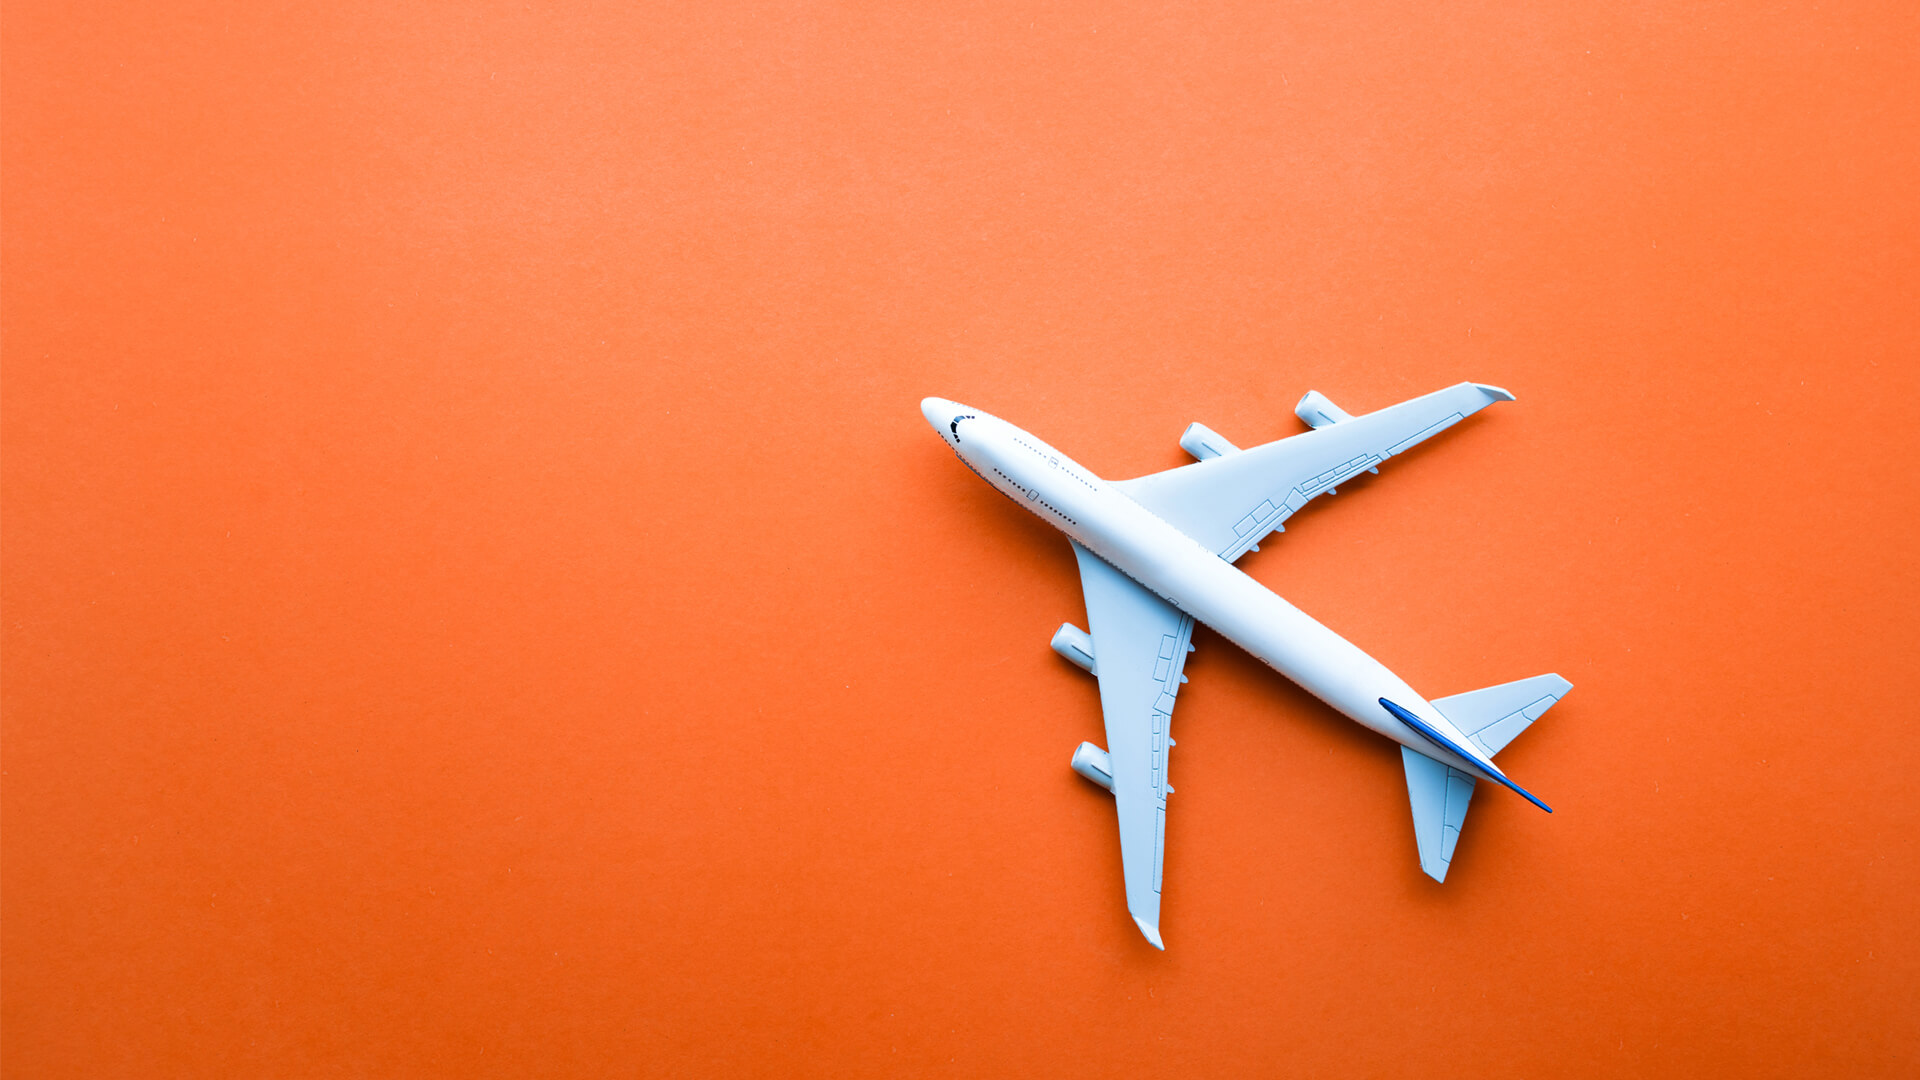 Achieved 75% Test Automation for Critical Applications of an Airline through Application Testing